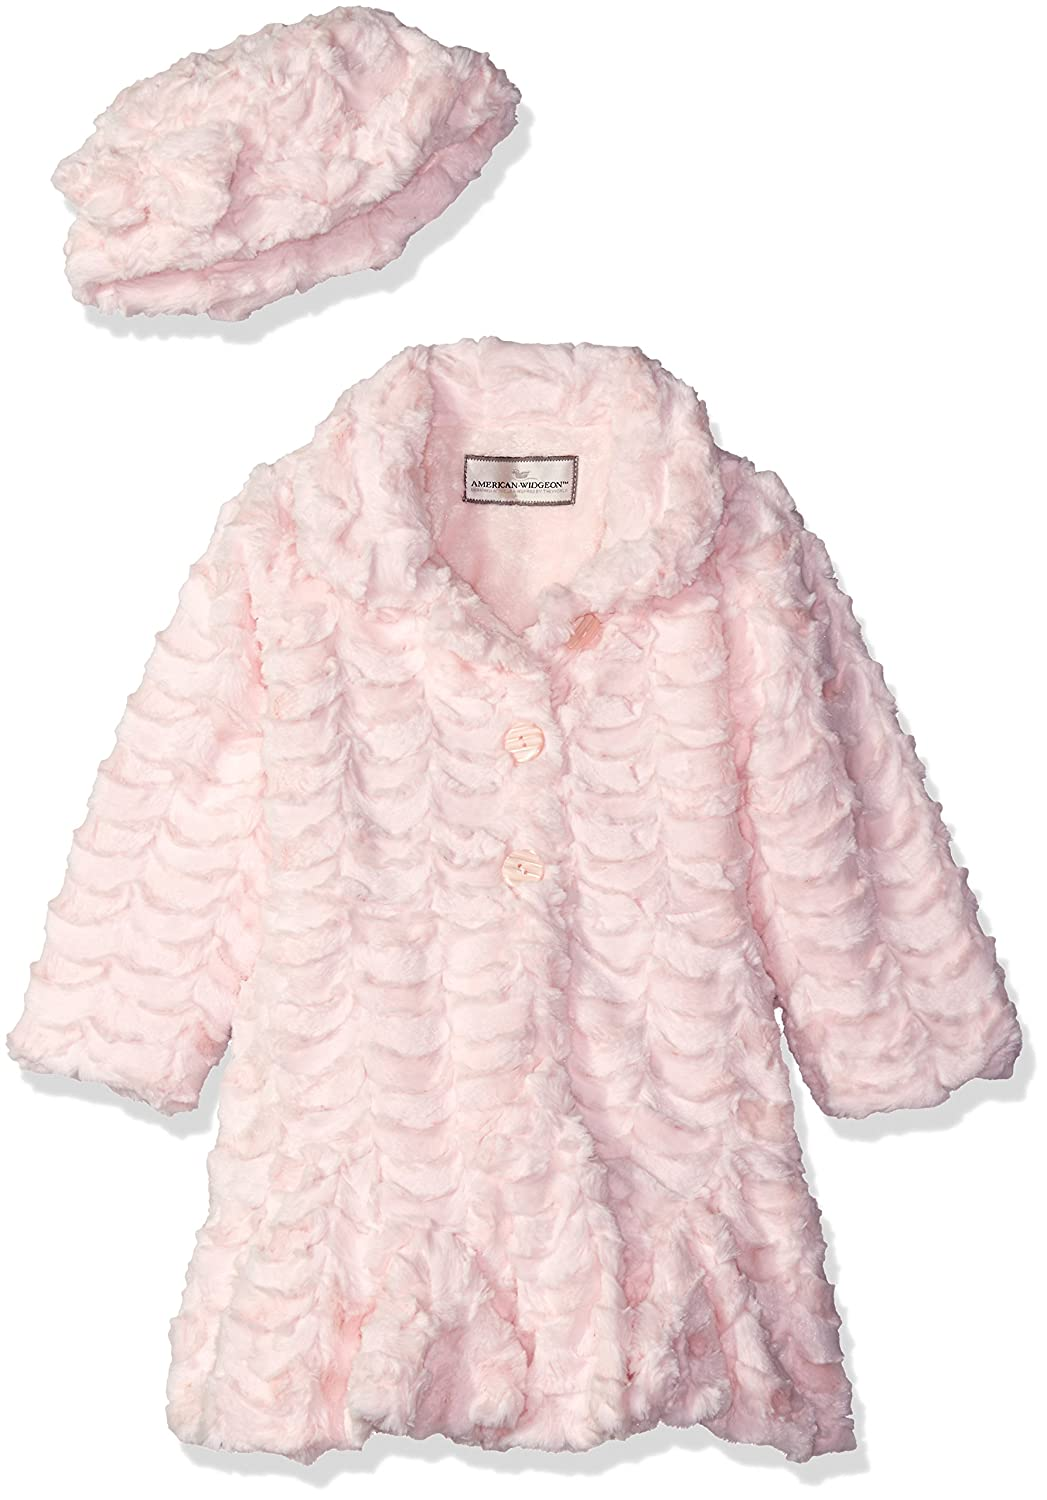 Widgeon girls Faux Fur Flounce Skirt Bottom Coat and Hat 3506